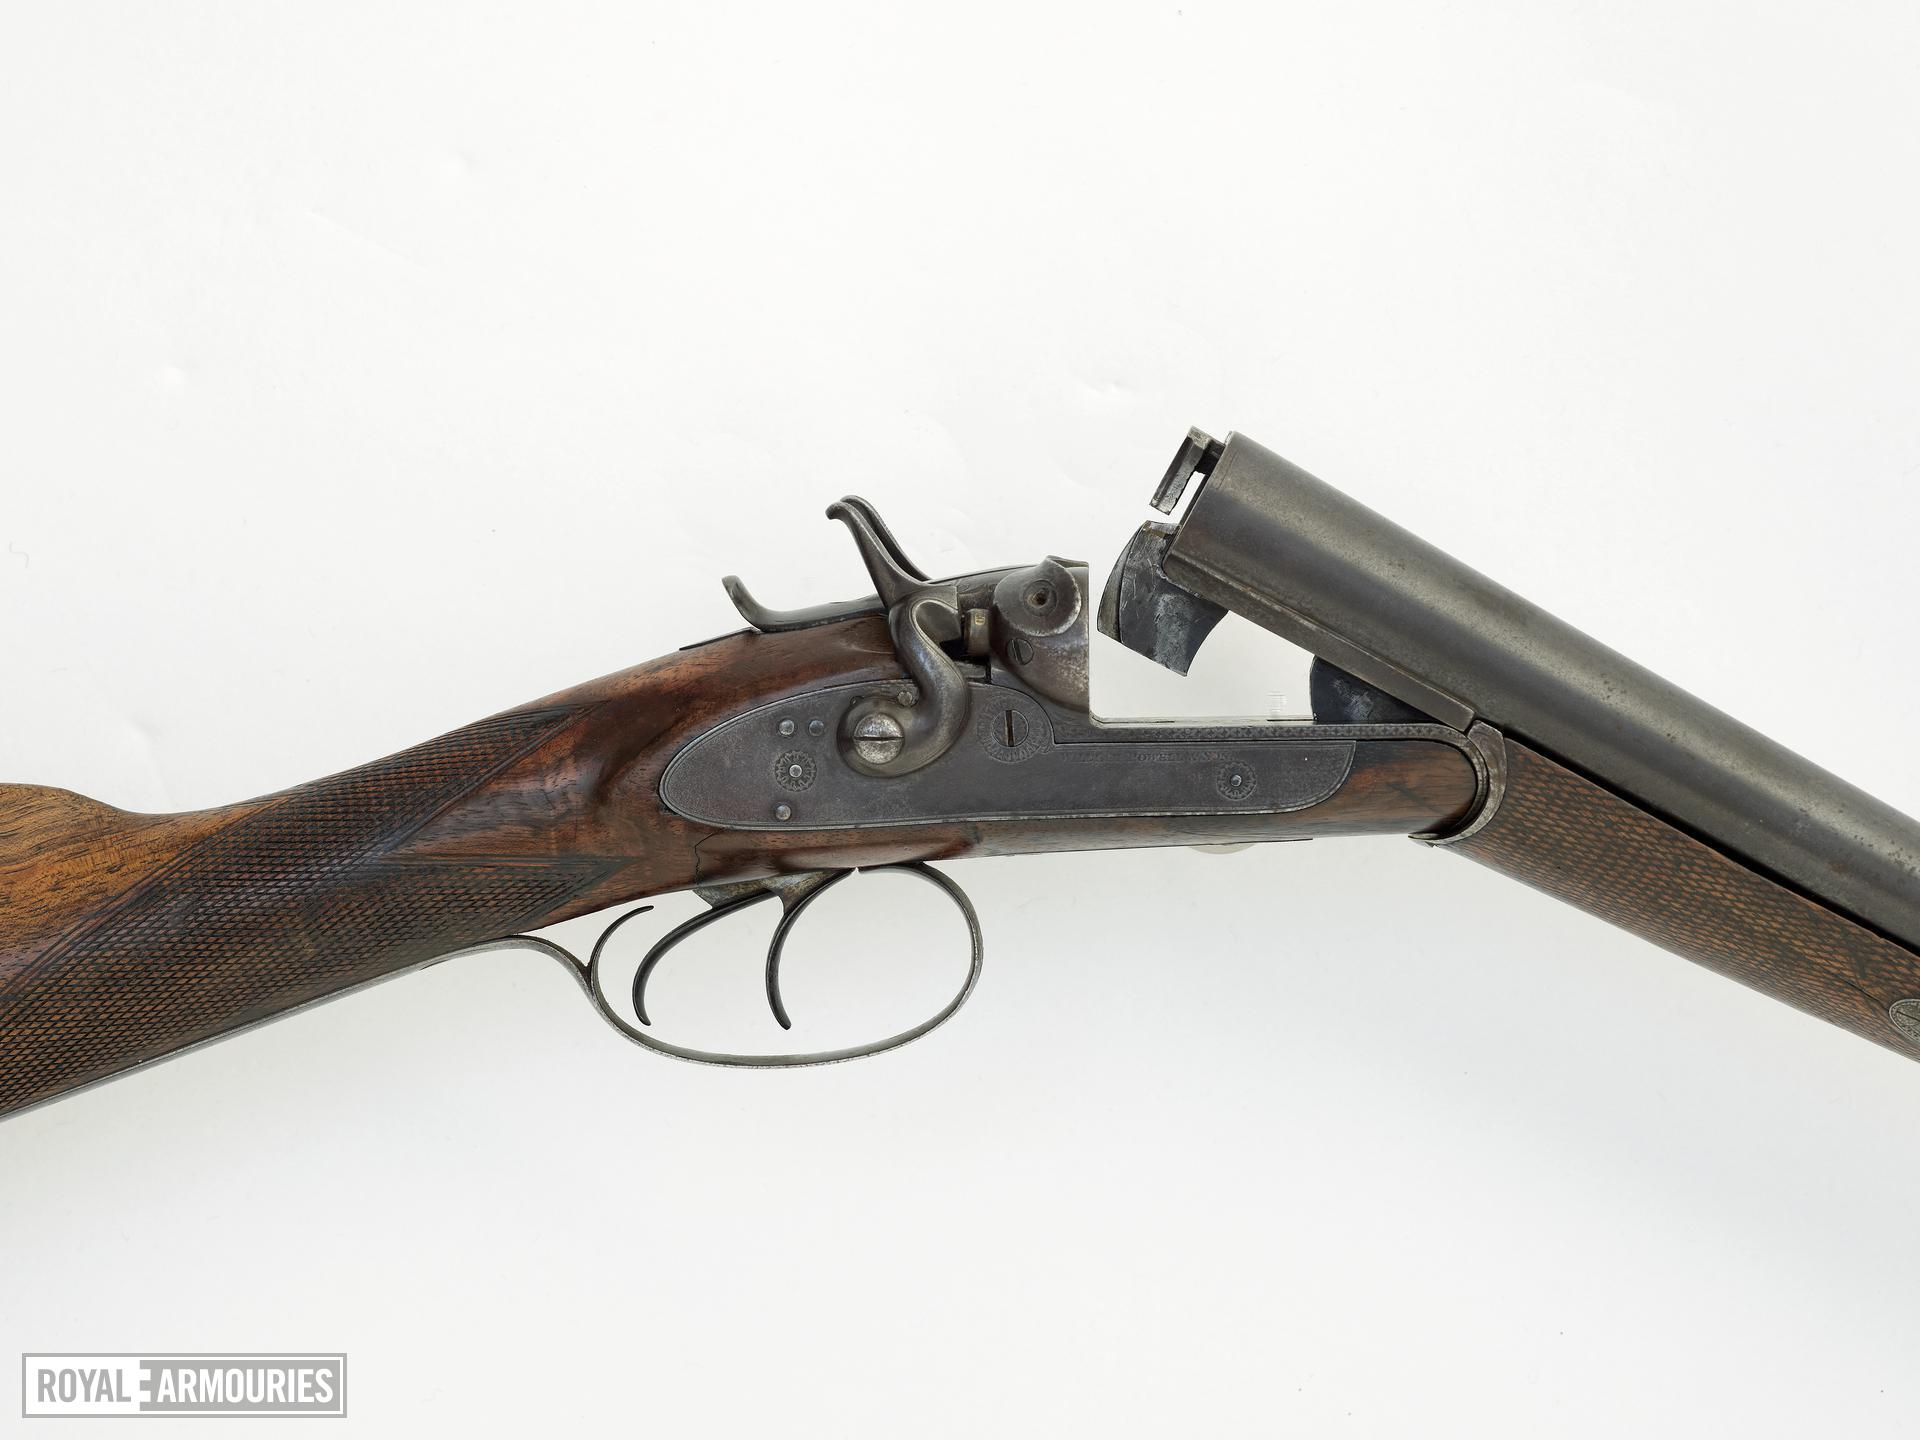 Centrefire breech-loading double-barrelled shotgun - By William Powell and Son